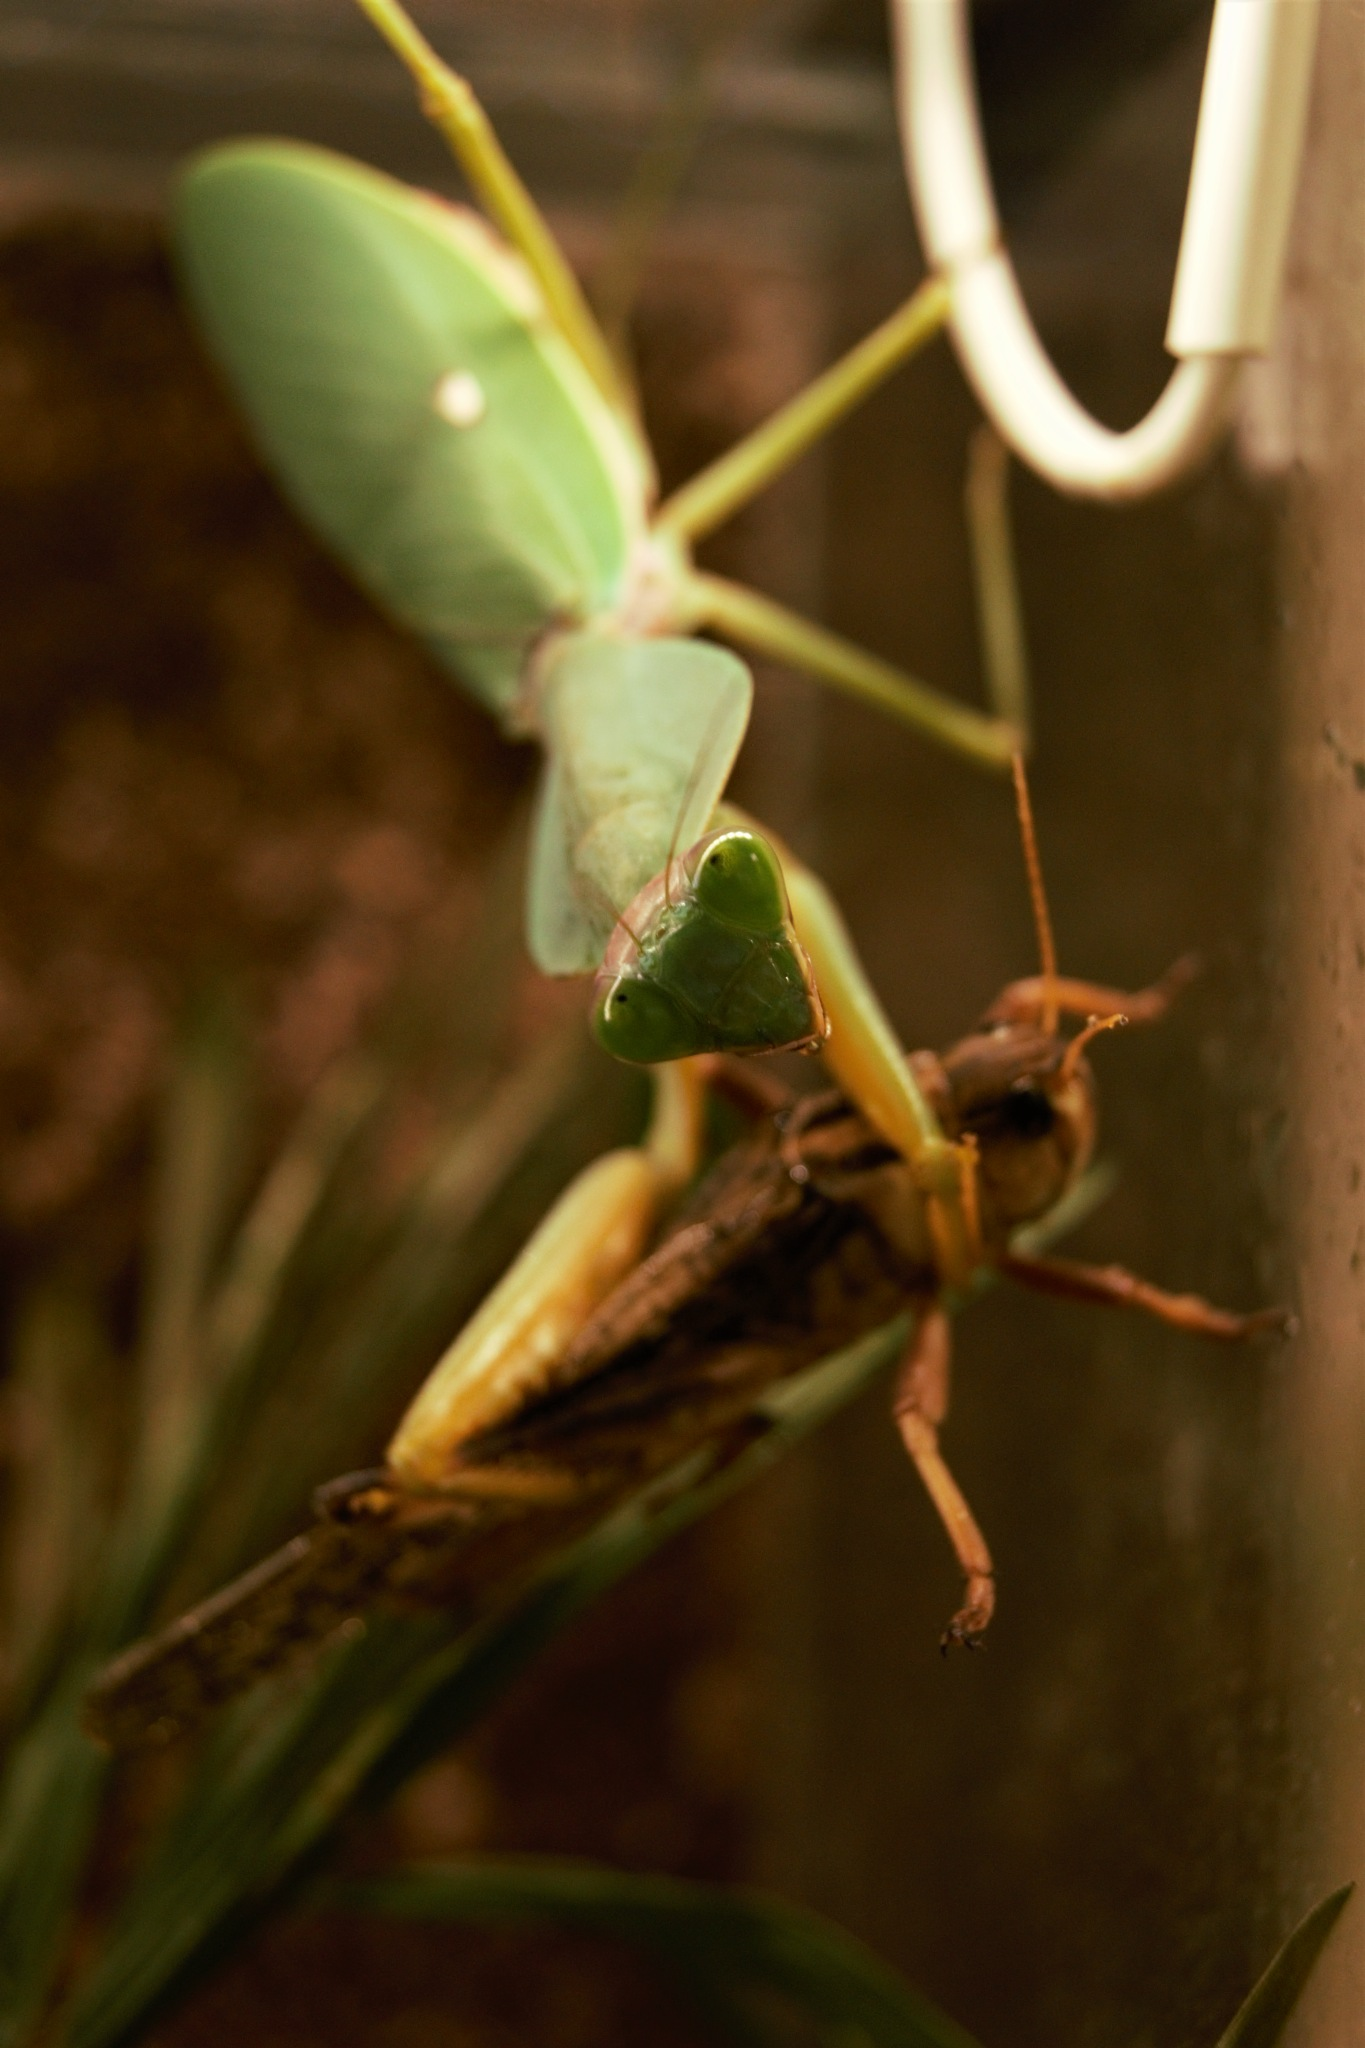 Mantis and its prey by Marco Kerp